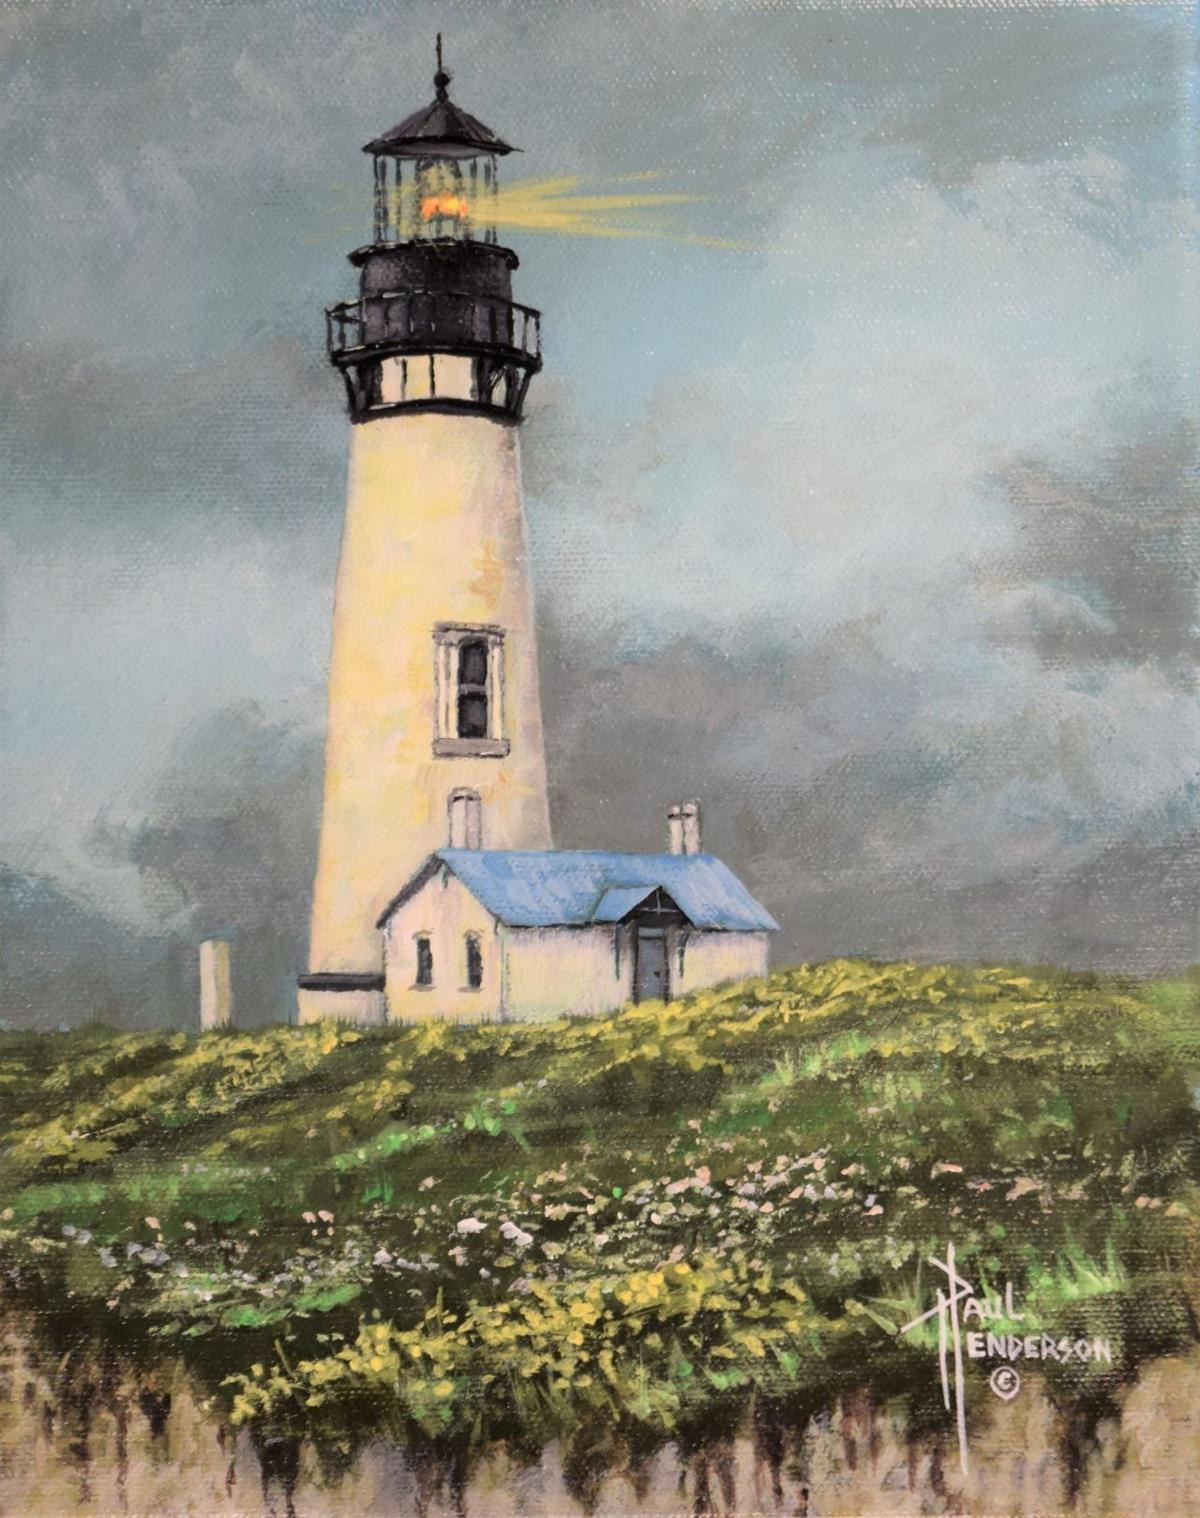 Yaquina Head Lighthouse by Paul Henderson